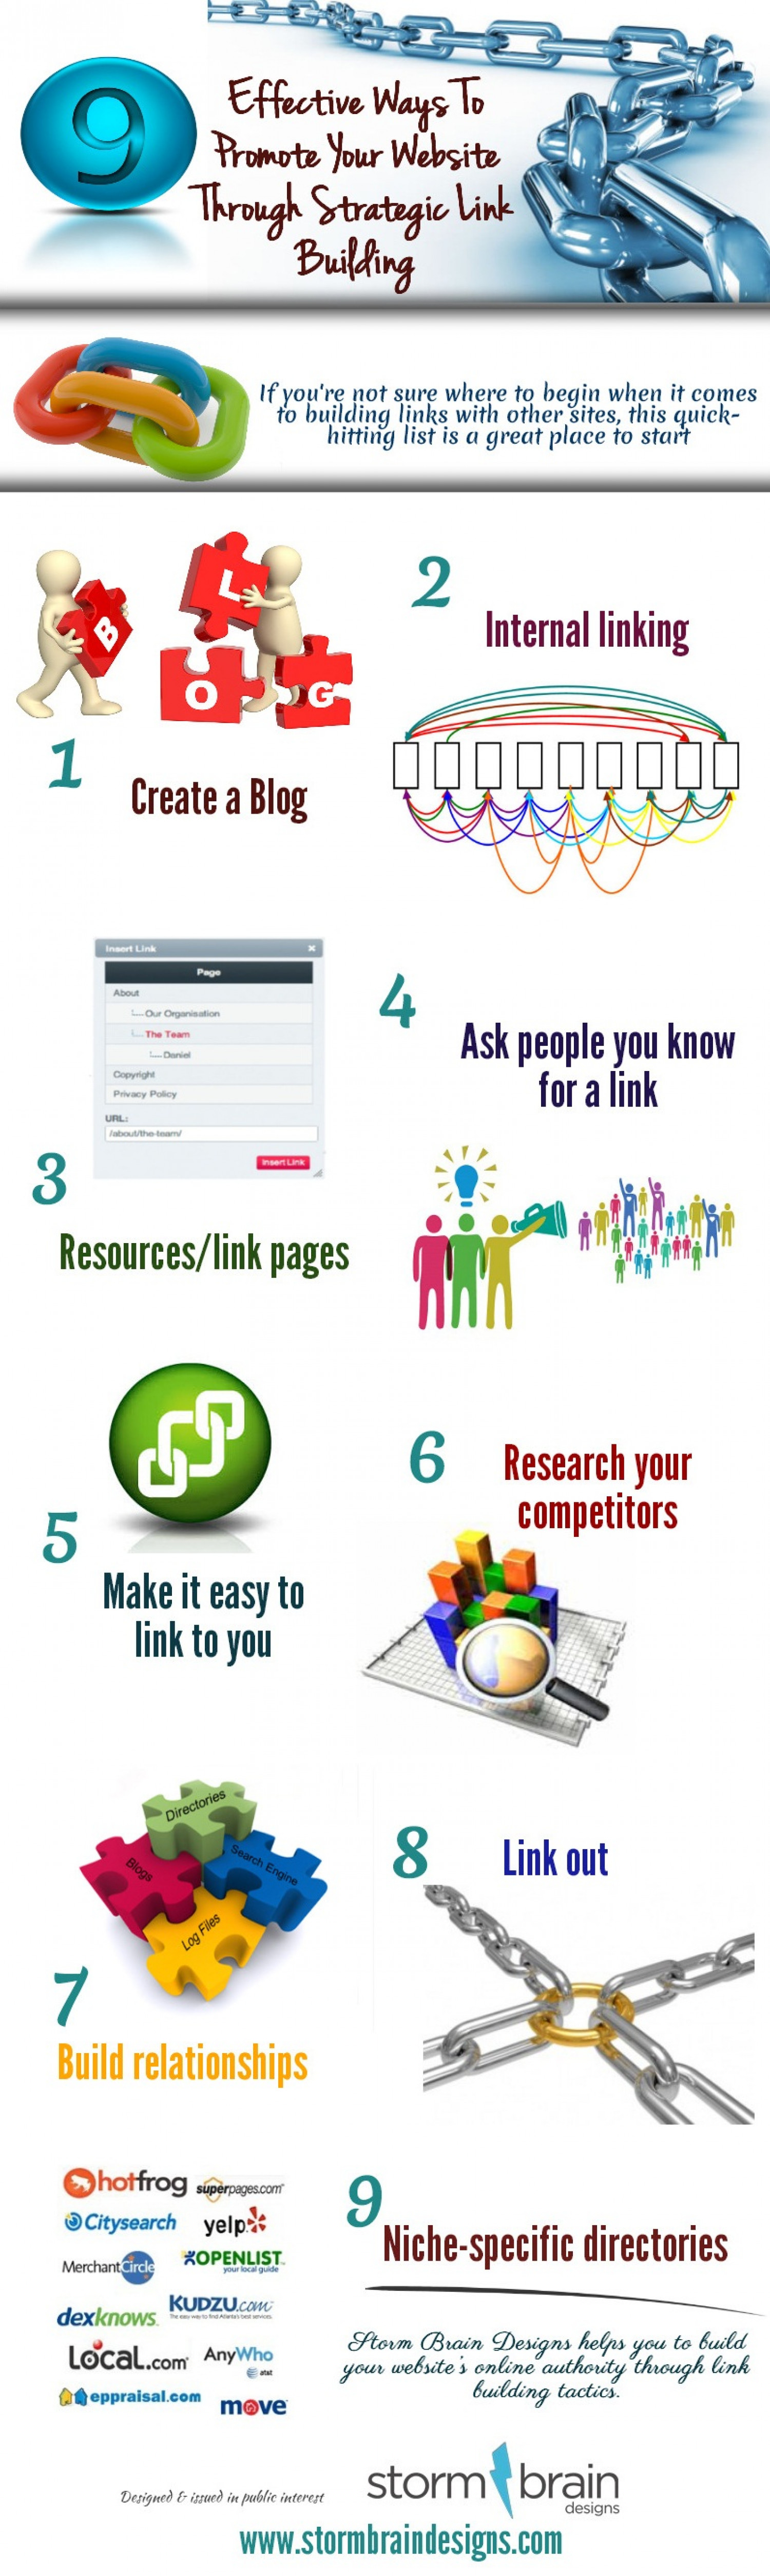 9 Effective Ways To Promote Your Website Through Strategic Link Building Infographic